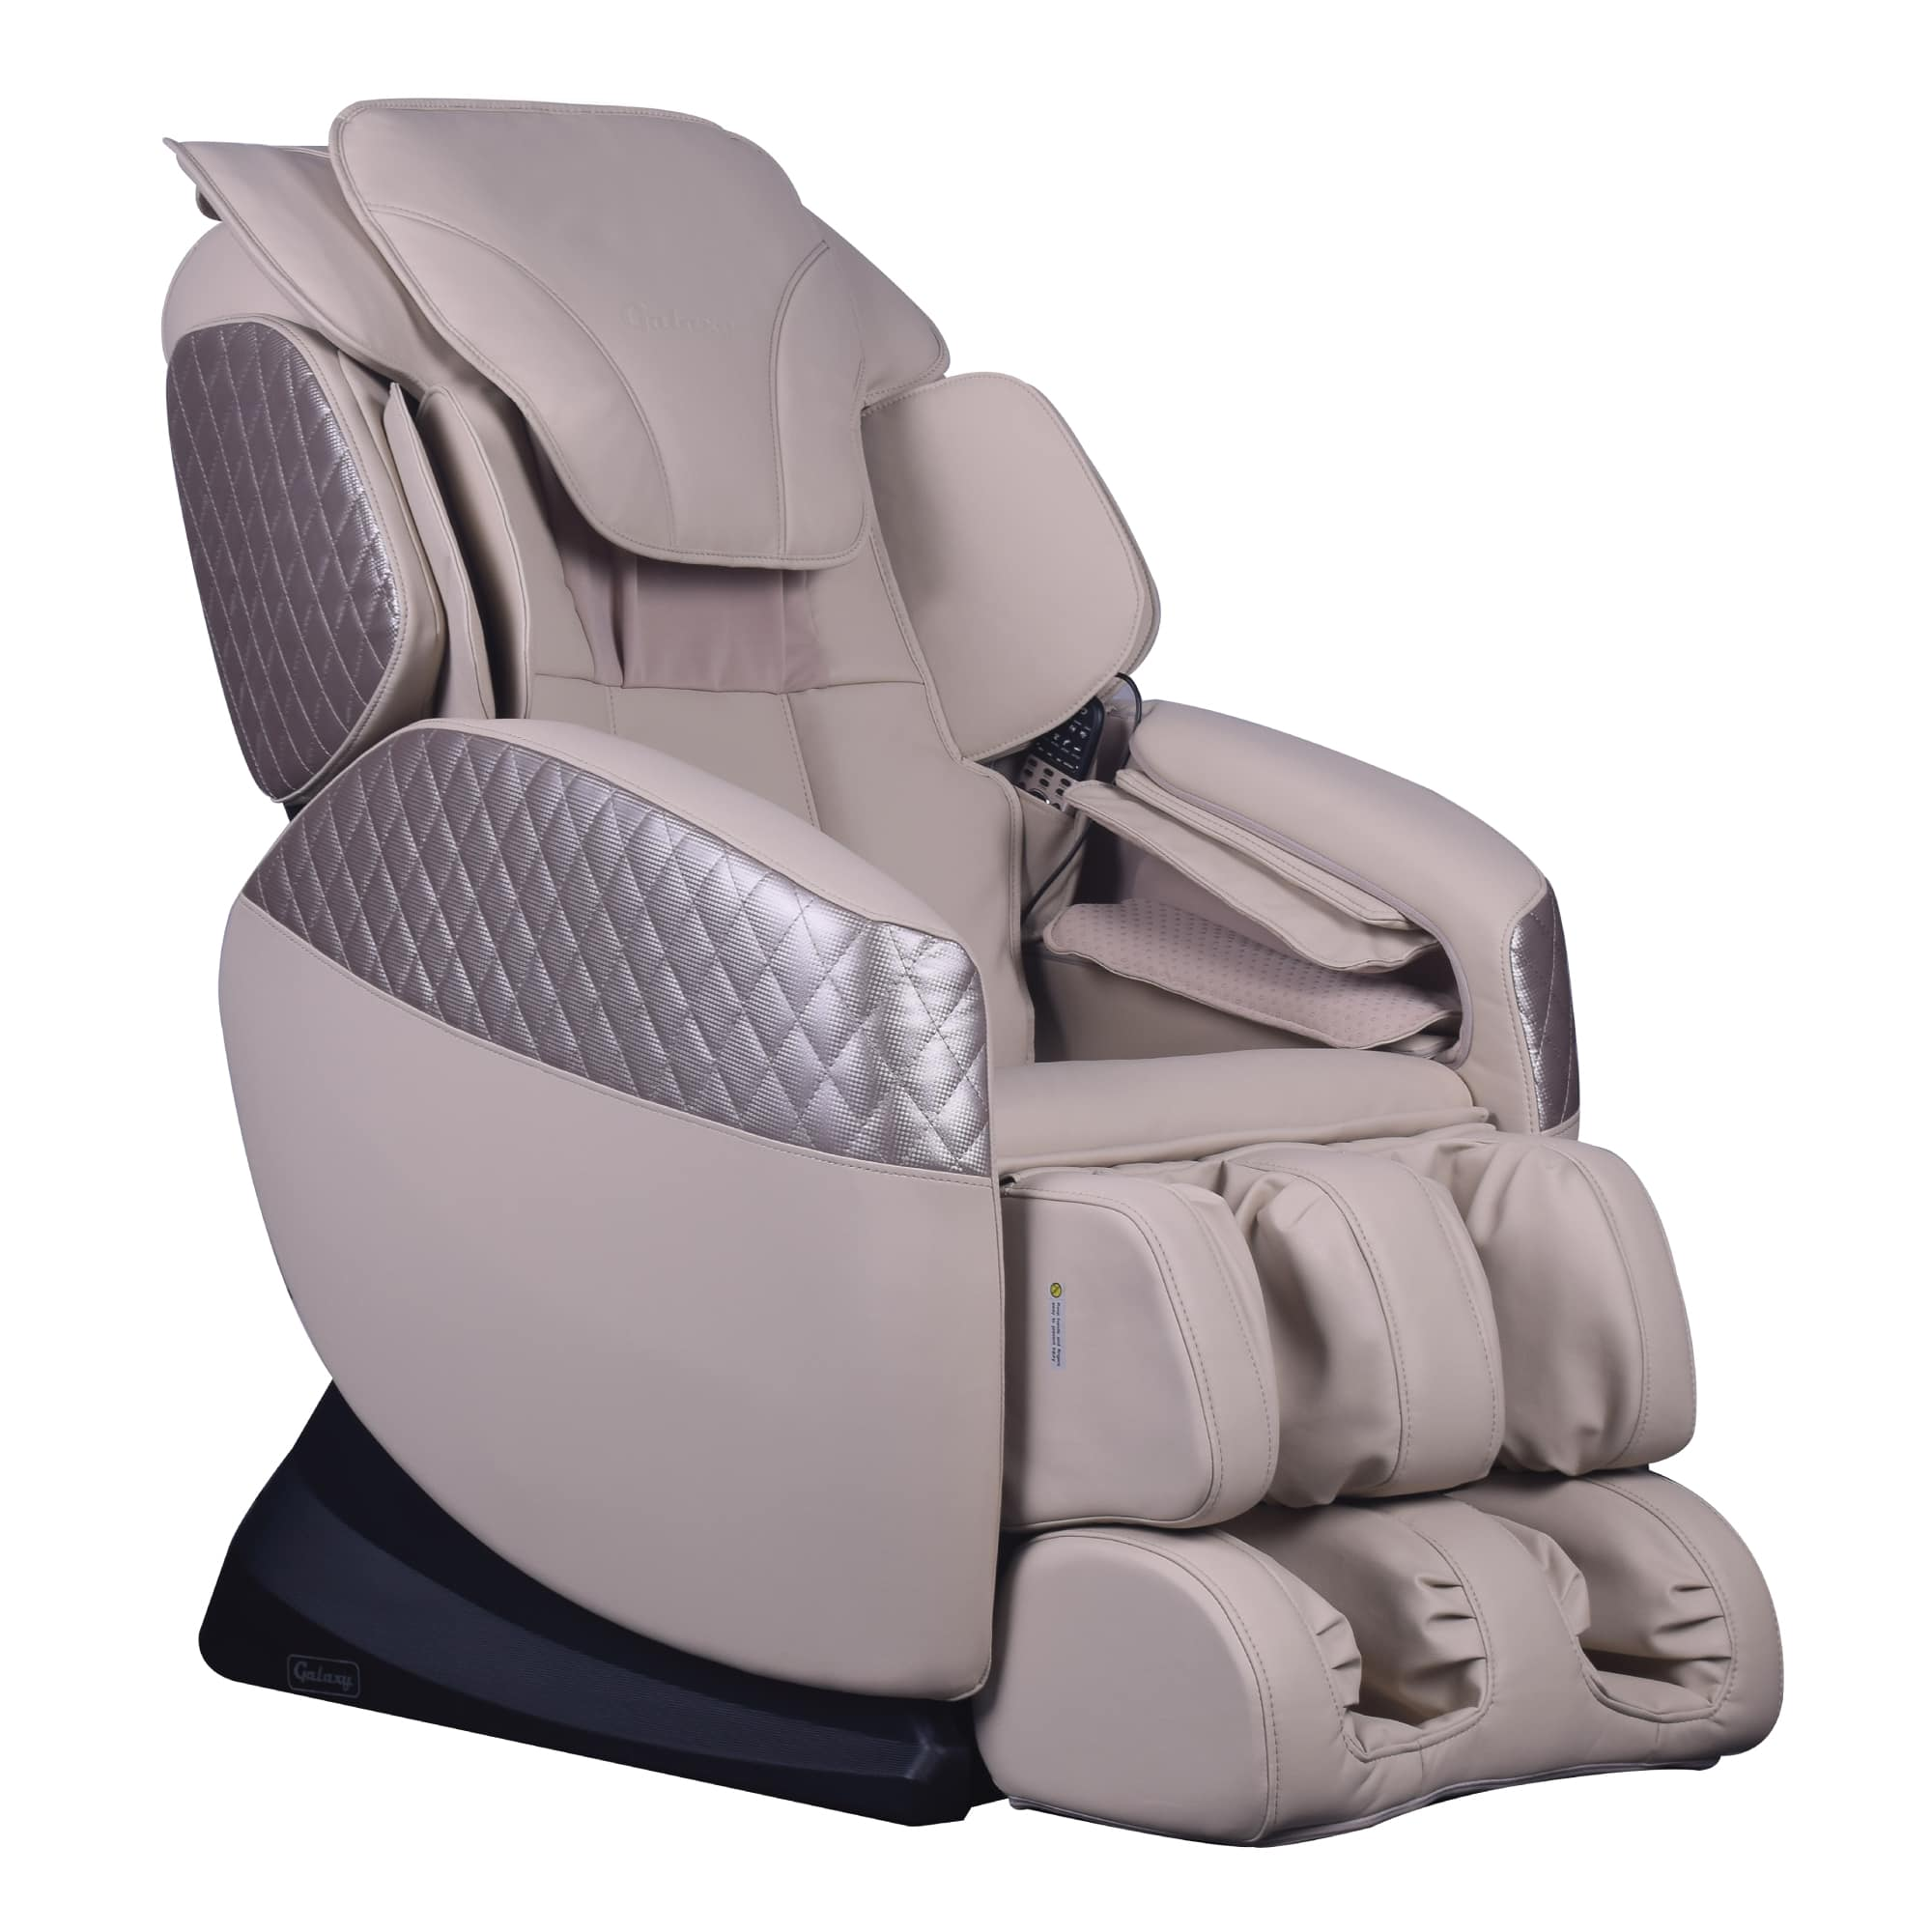 Osaki Massage Chair (EC-555) Full Body Massage Chair for $849 + FS (Lowest Price Ever)